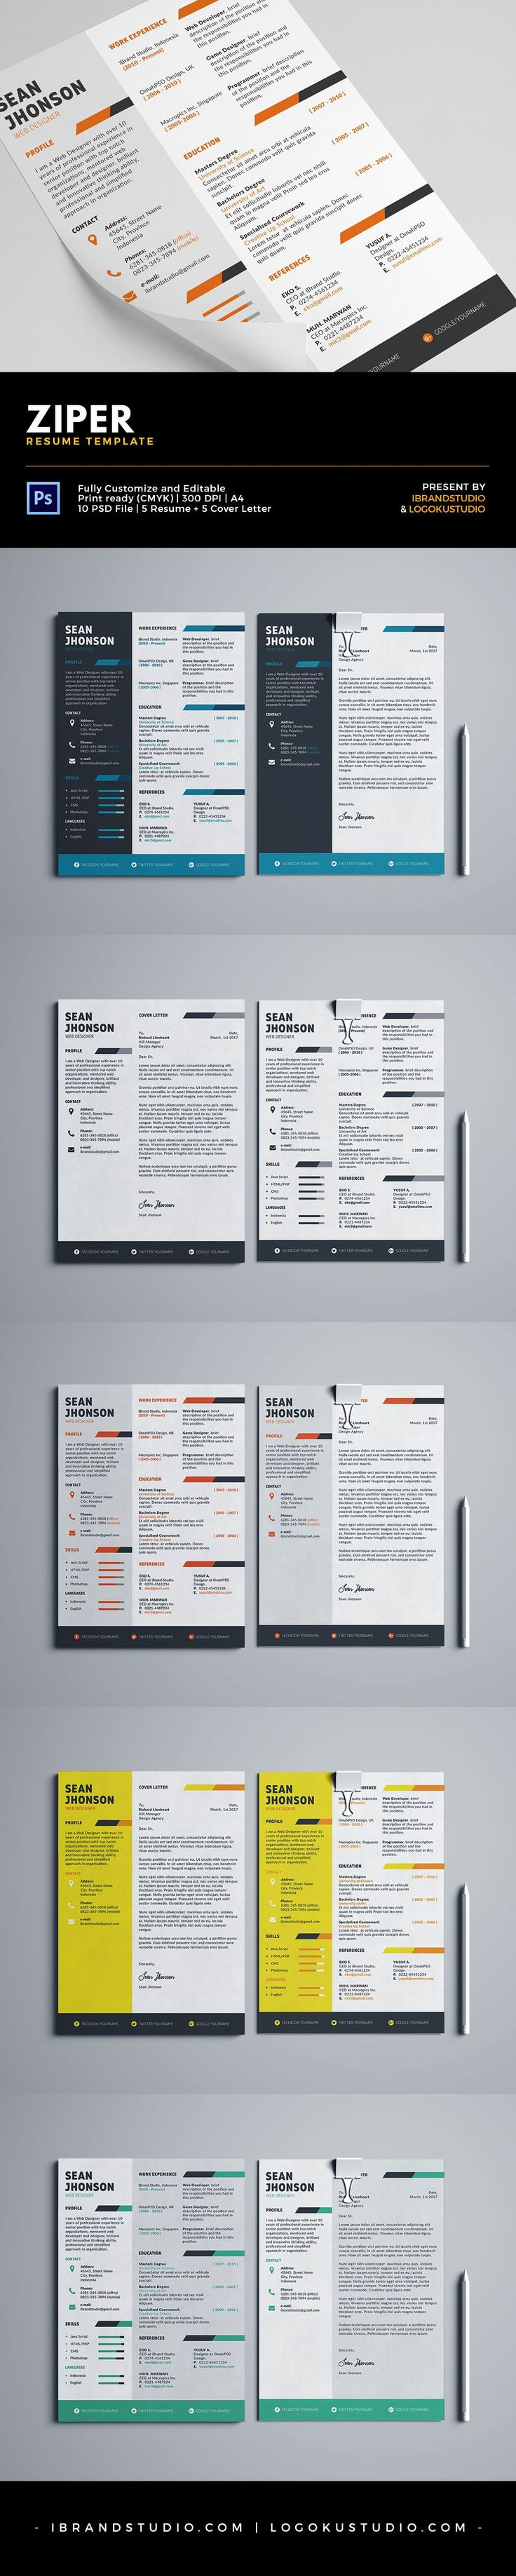 key words for resume%0A Free Ziper Resume Template and Cover Letter    Styles  PSD